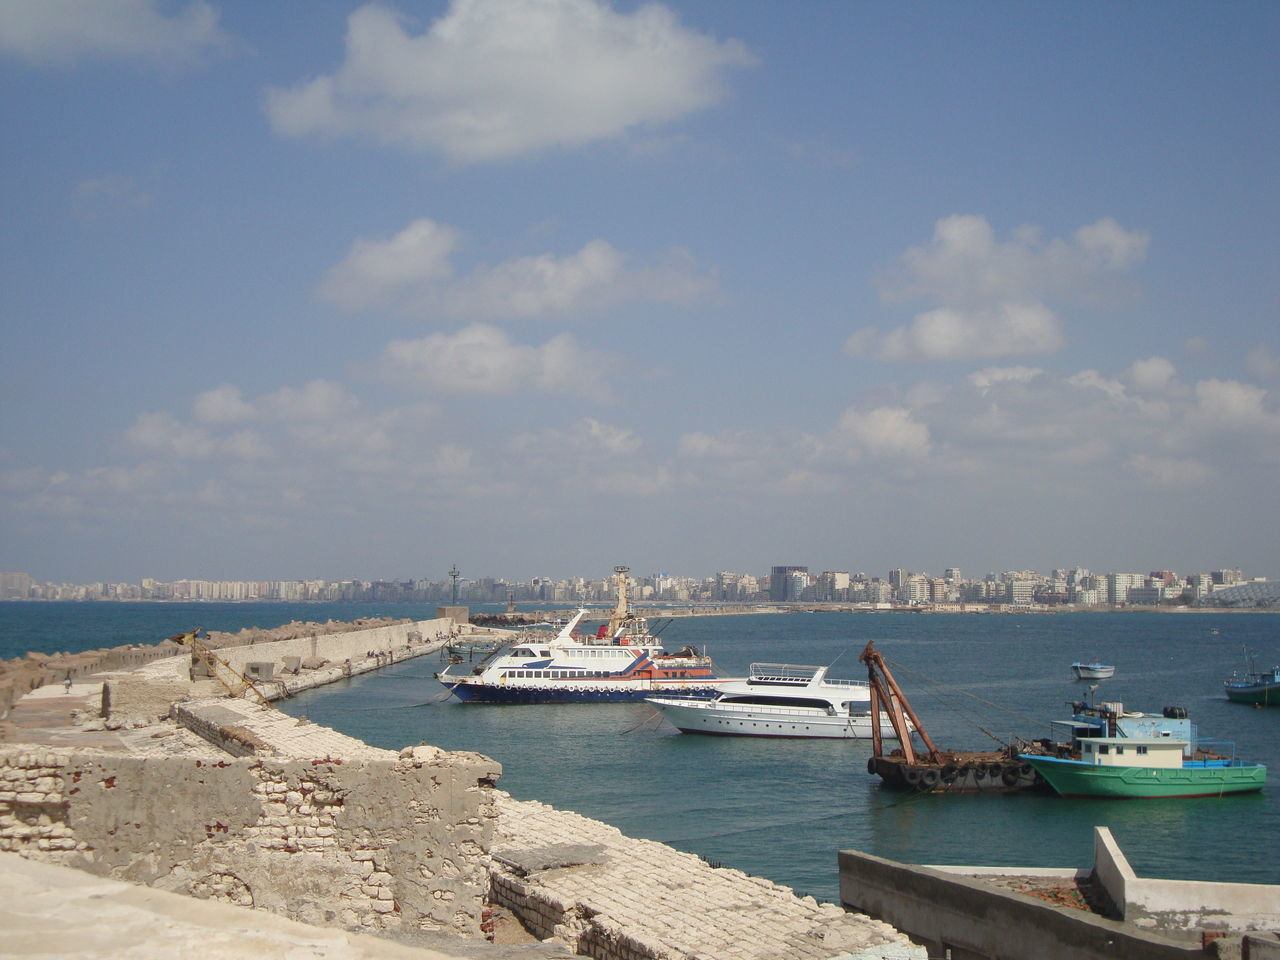 Boats Egypt Live For The Story Mediterranean Sea Seaside Summertime Tourist